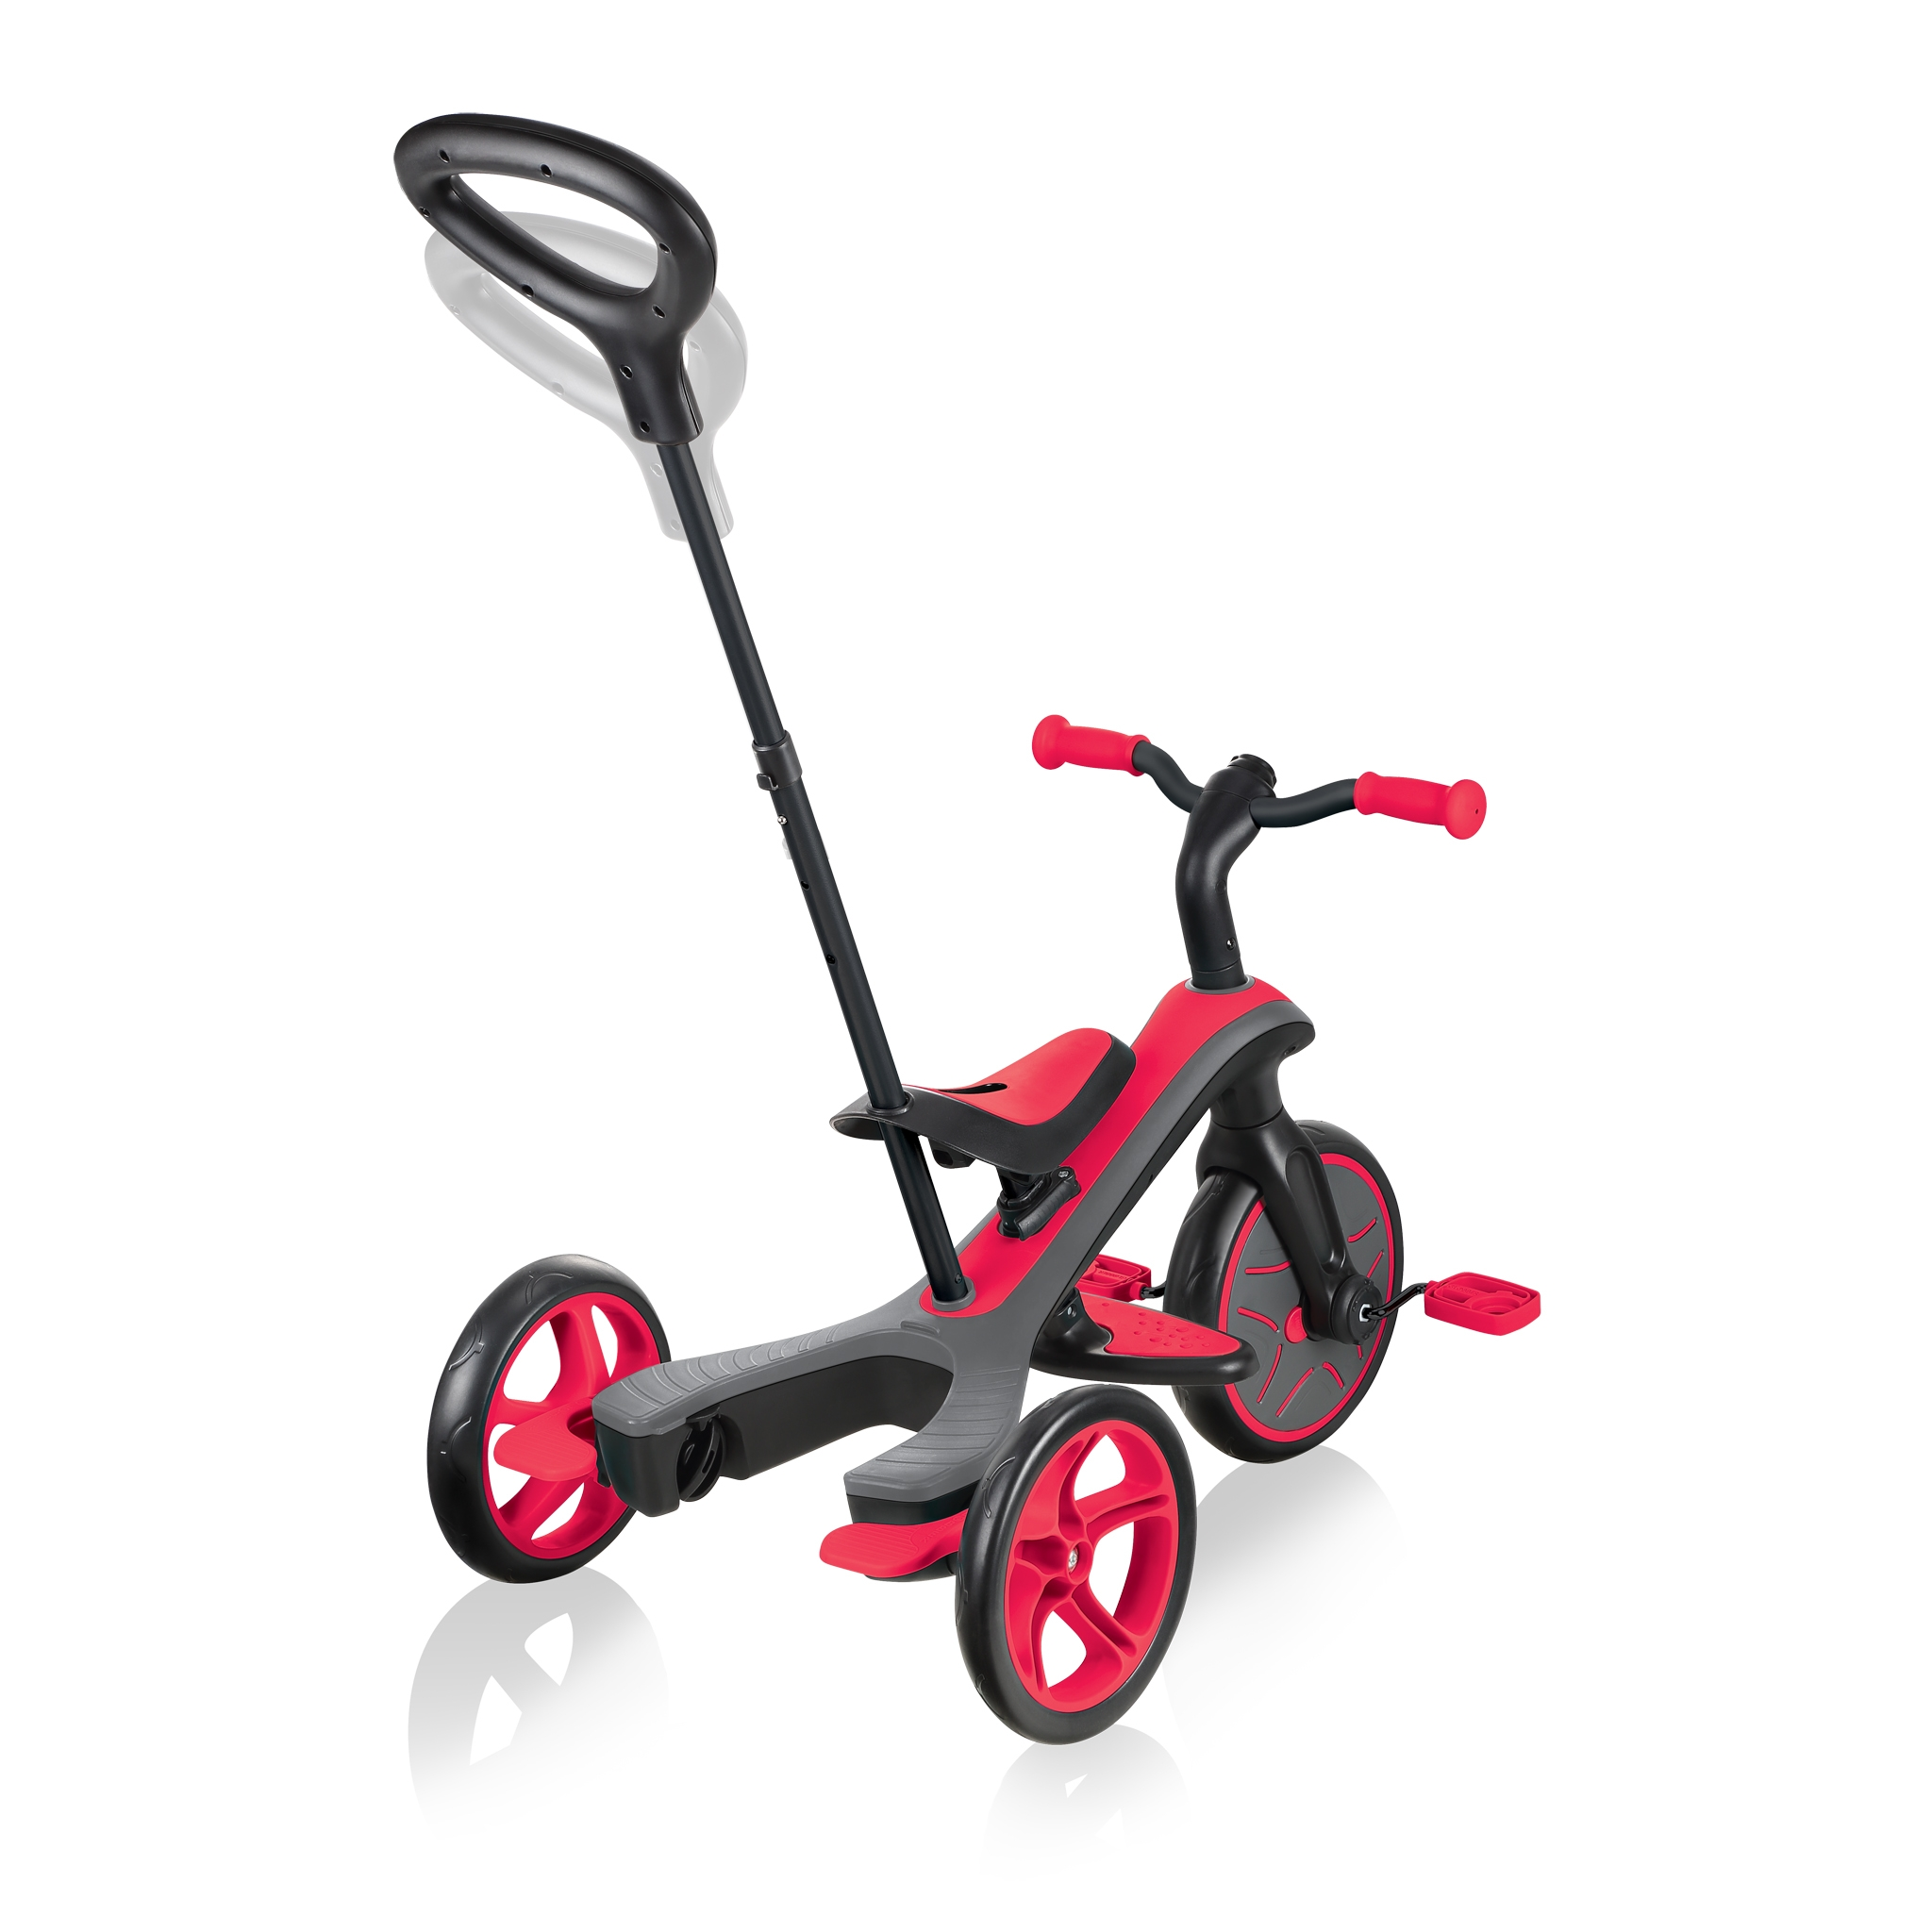 Globber-EXPLORER-TRIKE-4in1-all-in-one-baby-tricycle-and-kids-balance-bike-with-2-height-adjustable-parent-handle 7